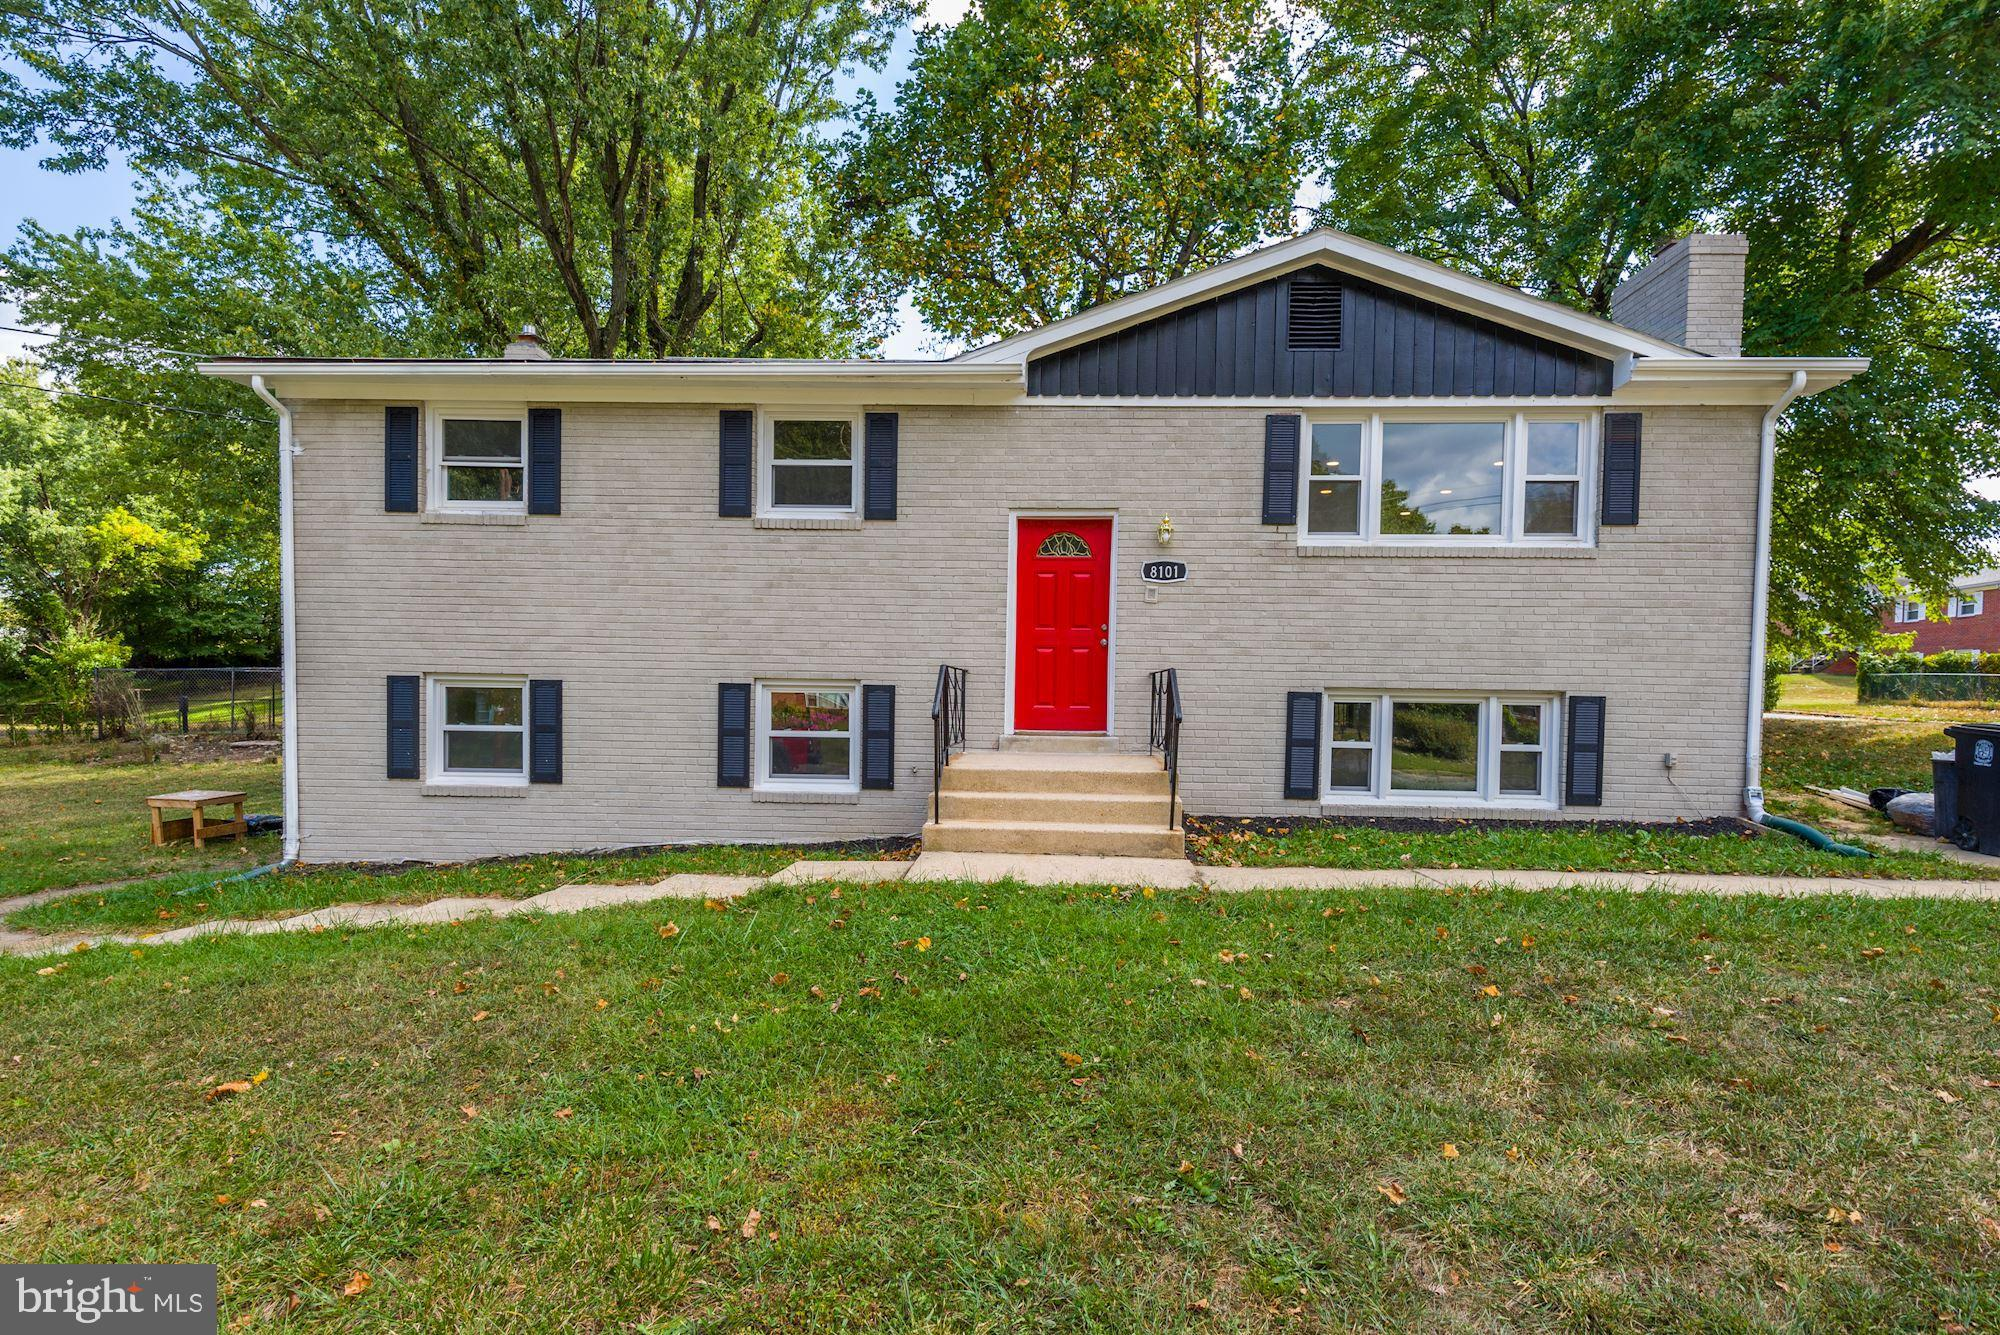 8101 STEVE DRIVE, DISTRICT HEIGHTS, MD 20747